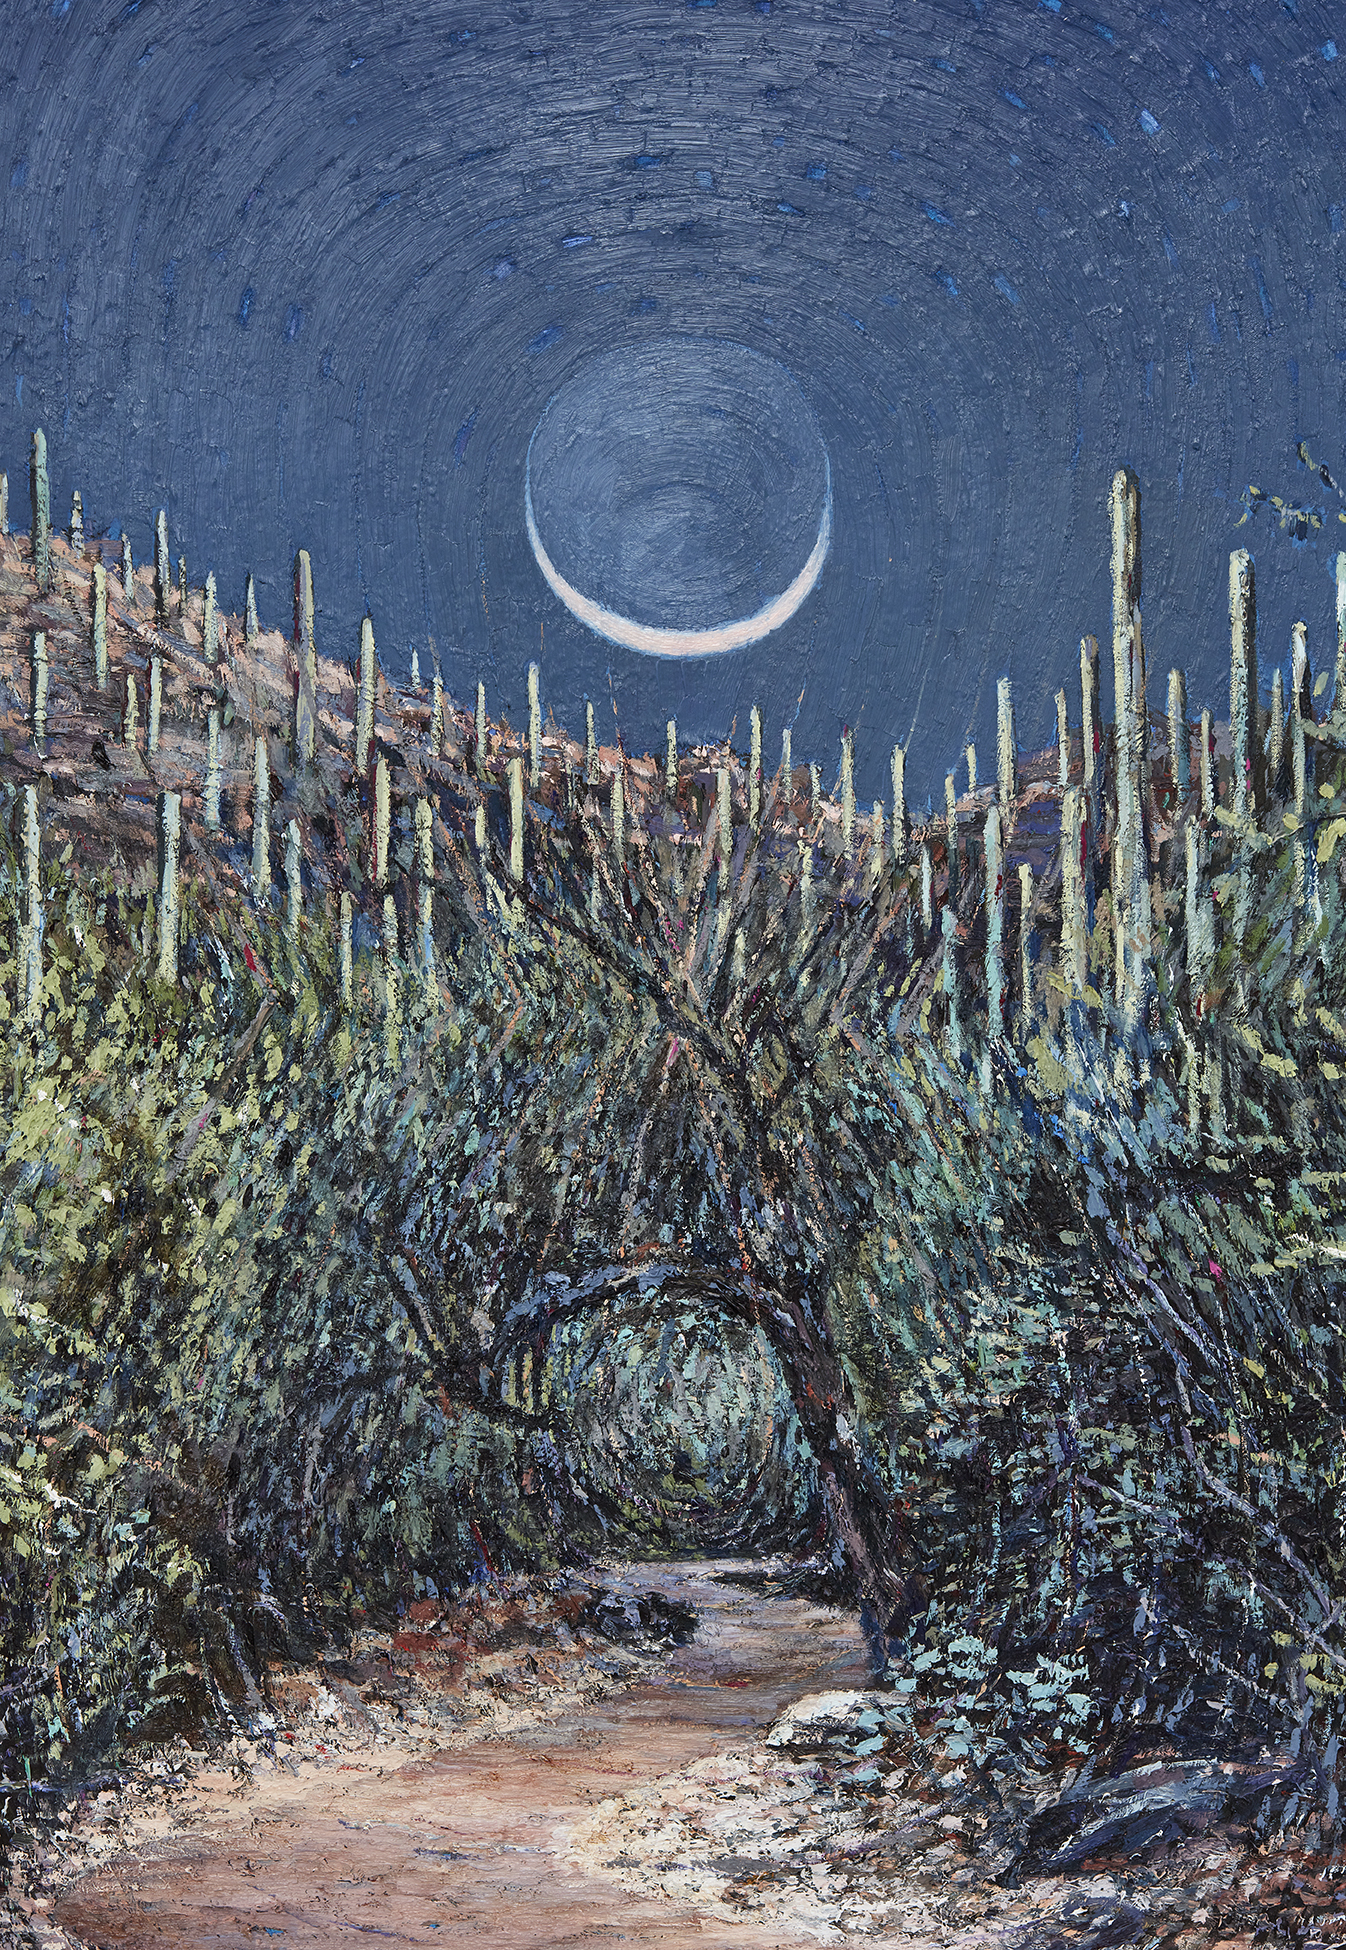 Wet Moon, Clear Path (Tucson) DETAIL